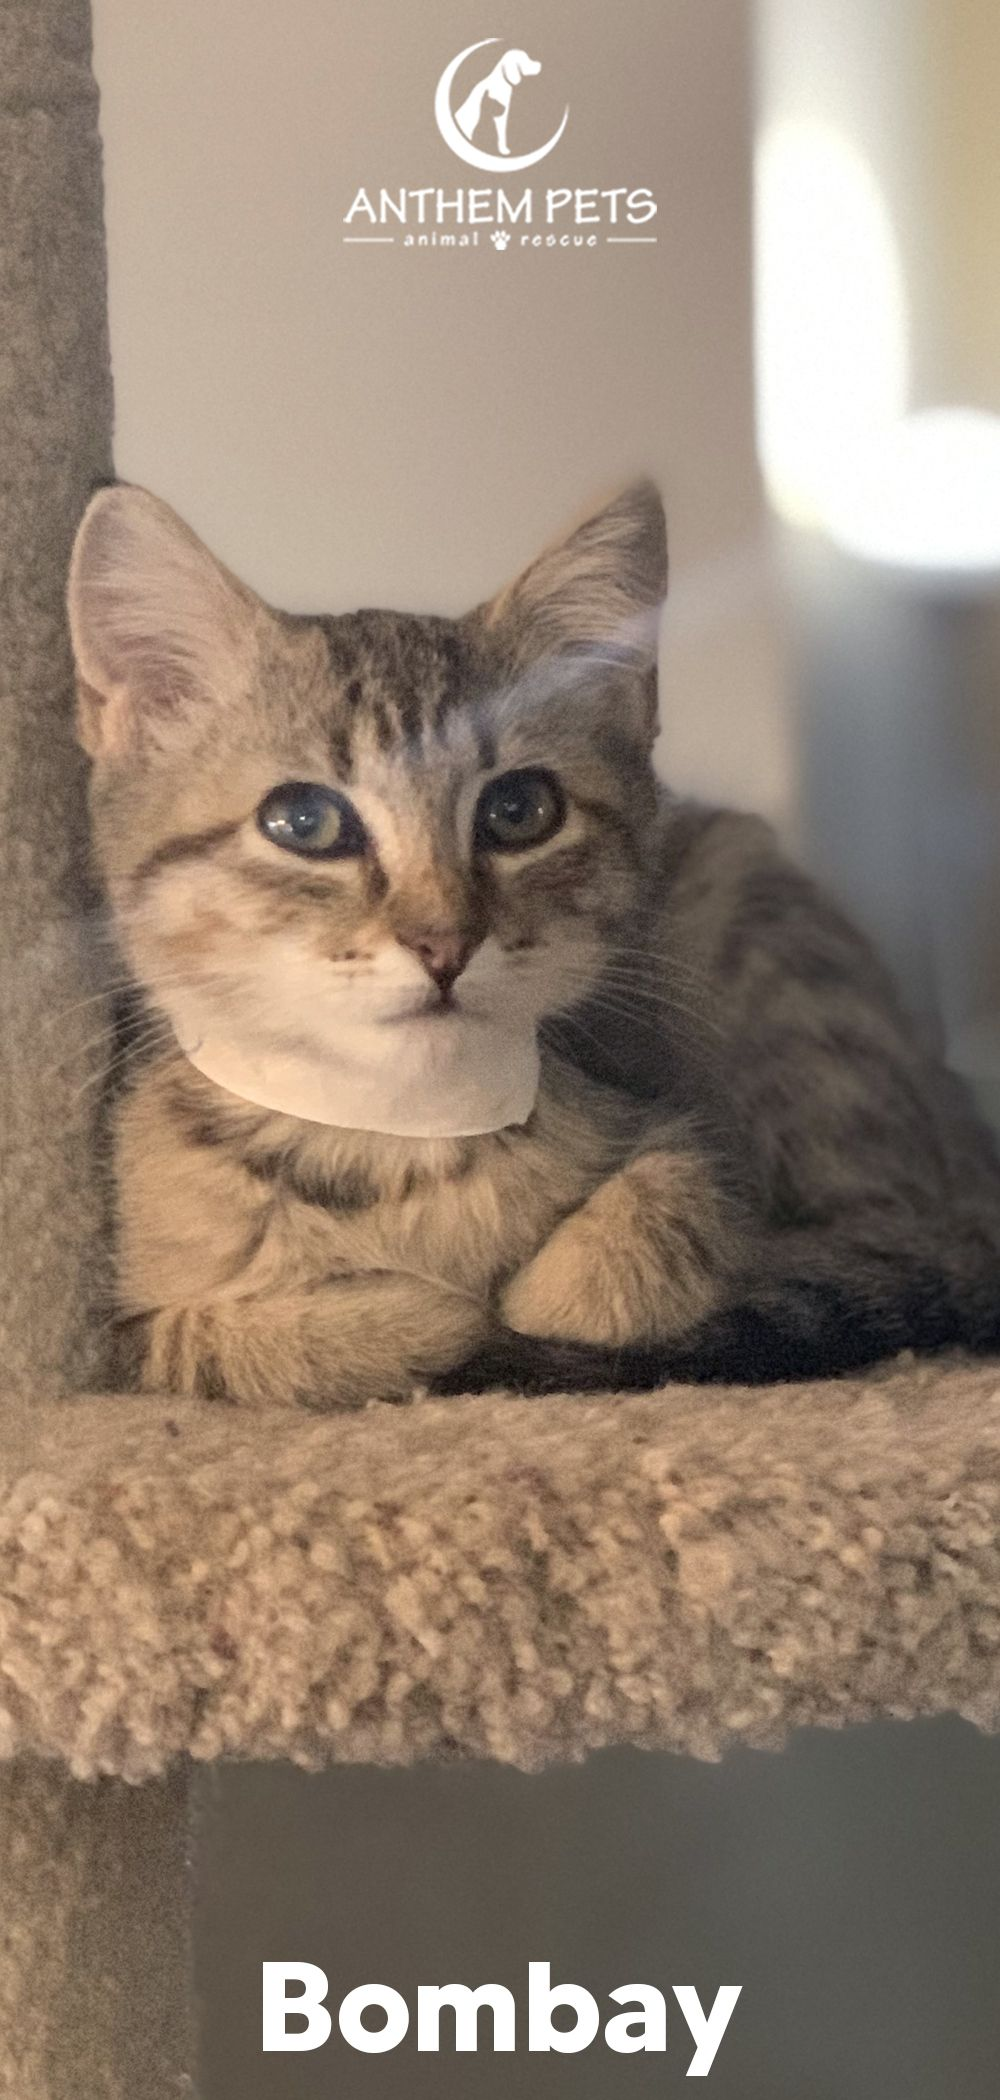 The First Name This Little Girl Had Was Big Eyes She Plays With The Other Kittens But Prefers A Nice Place To Be By Hers In 2020 Cat Adoption Cats Cats